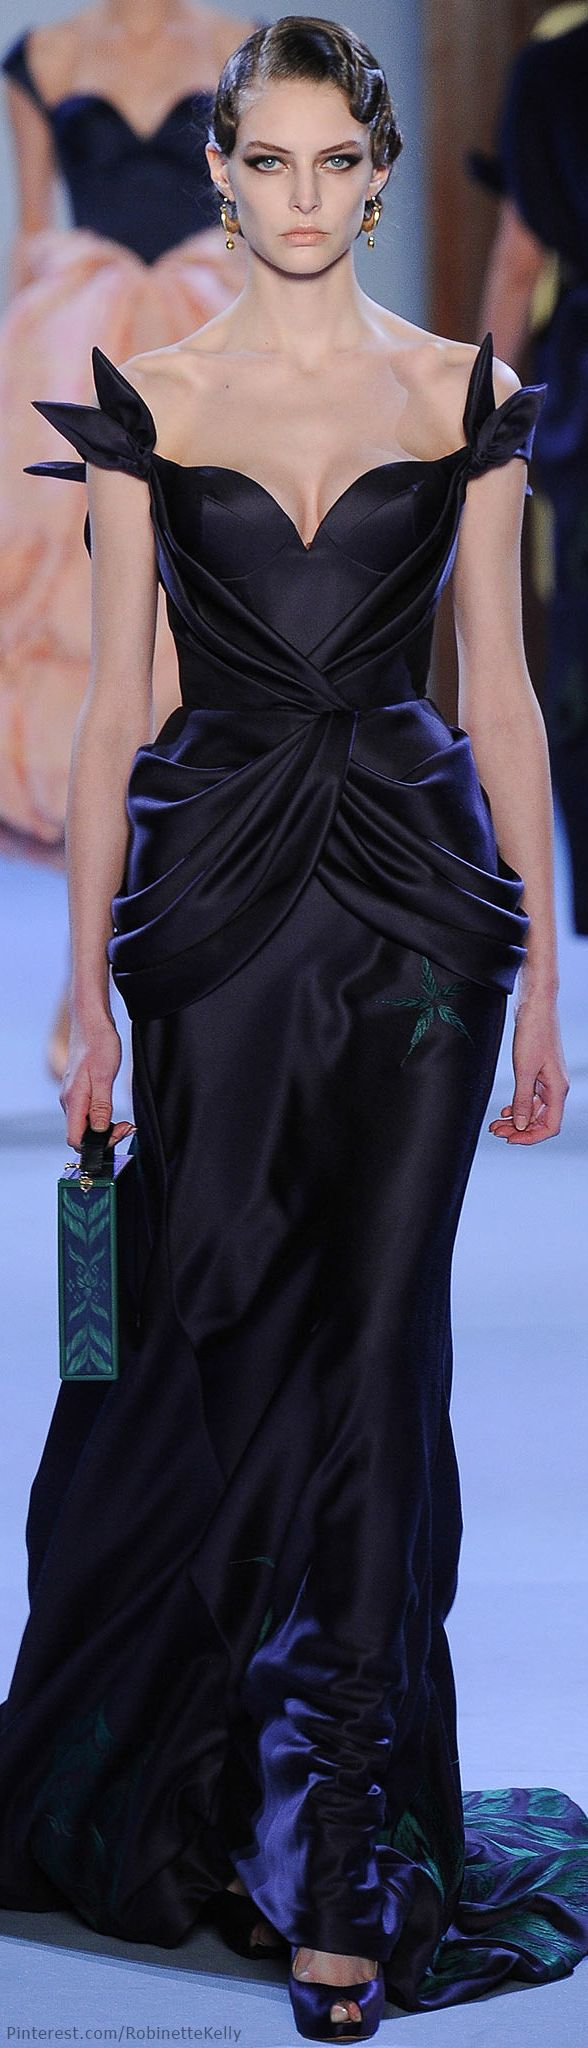 Ulyana Sergeenko Haute Couture | SS 2014 everything I love in a dress. Black and elegant.